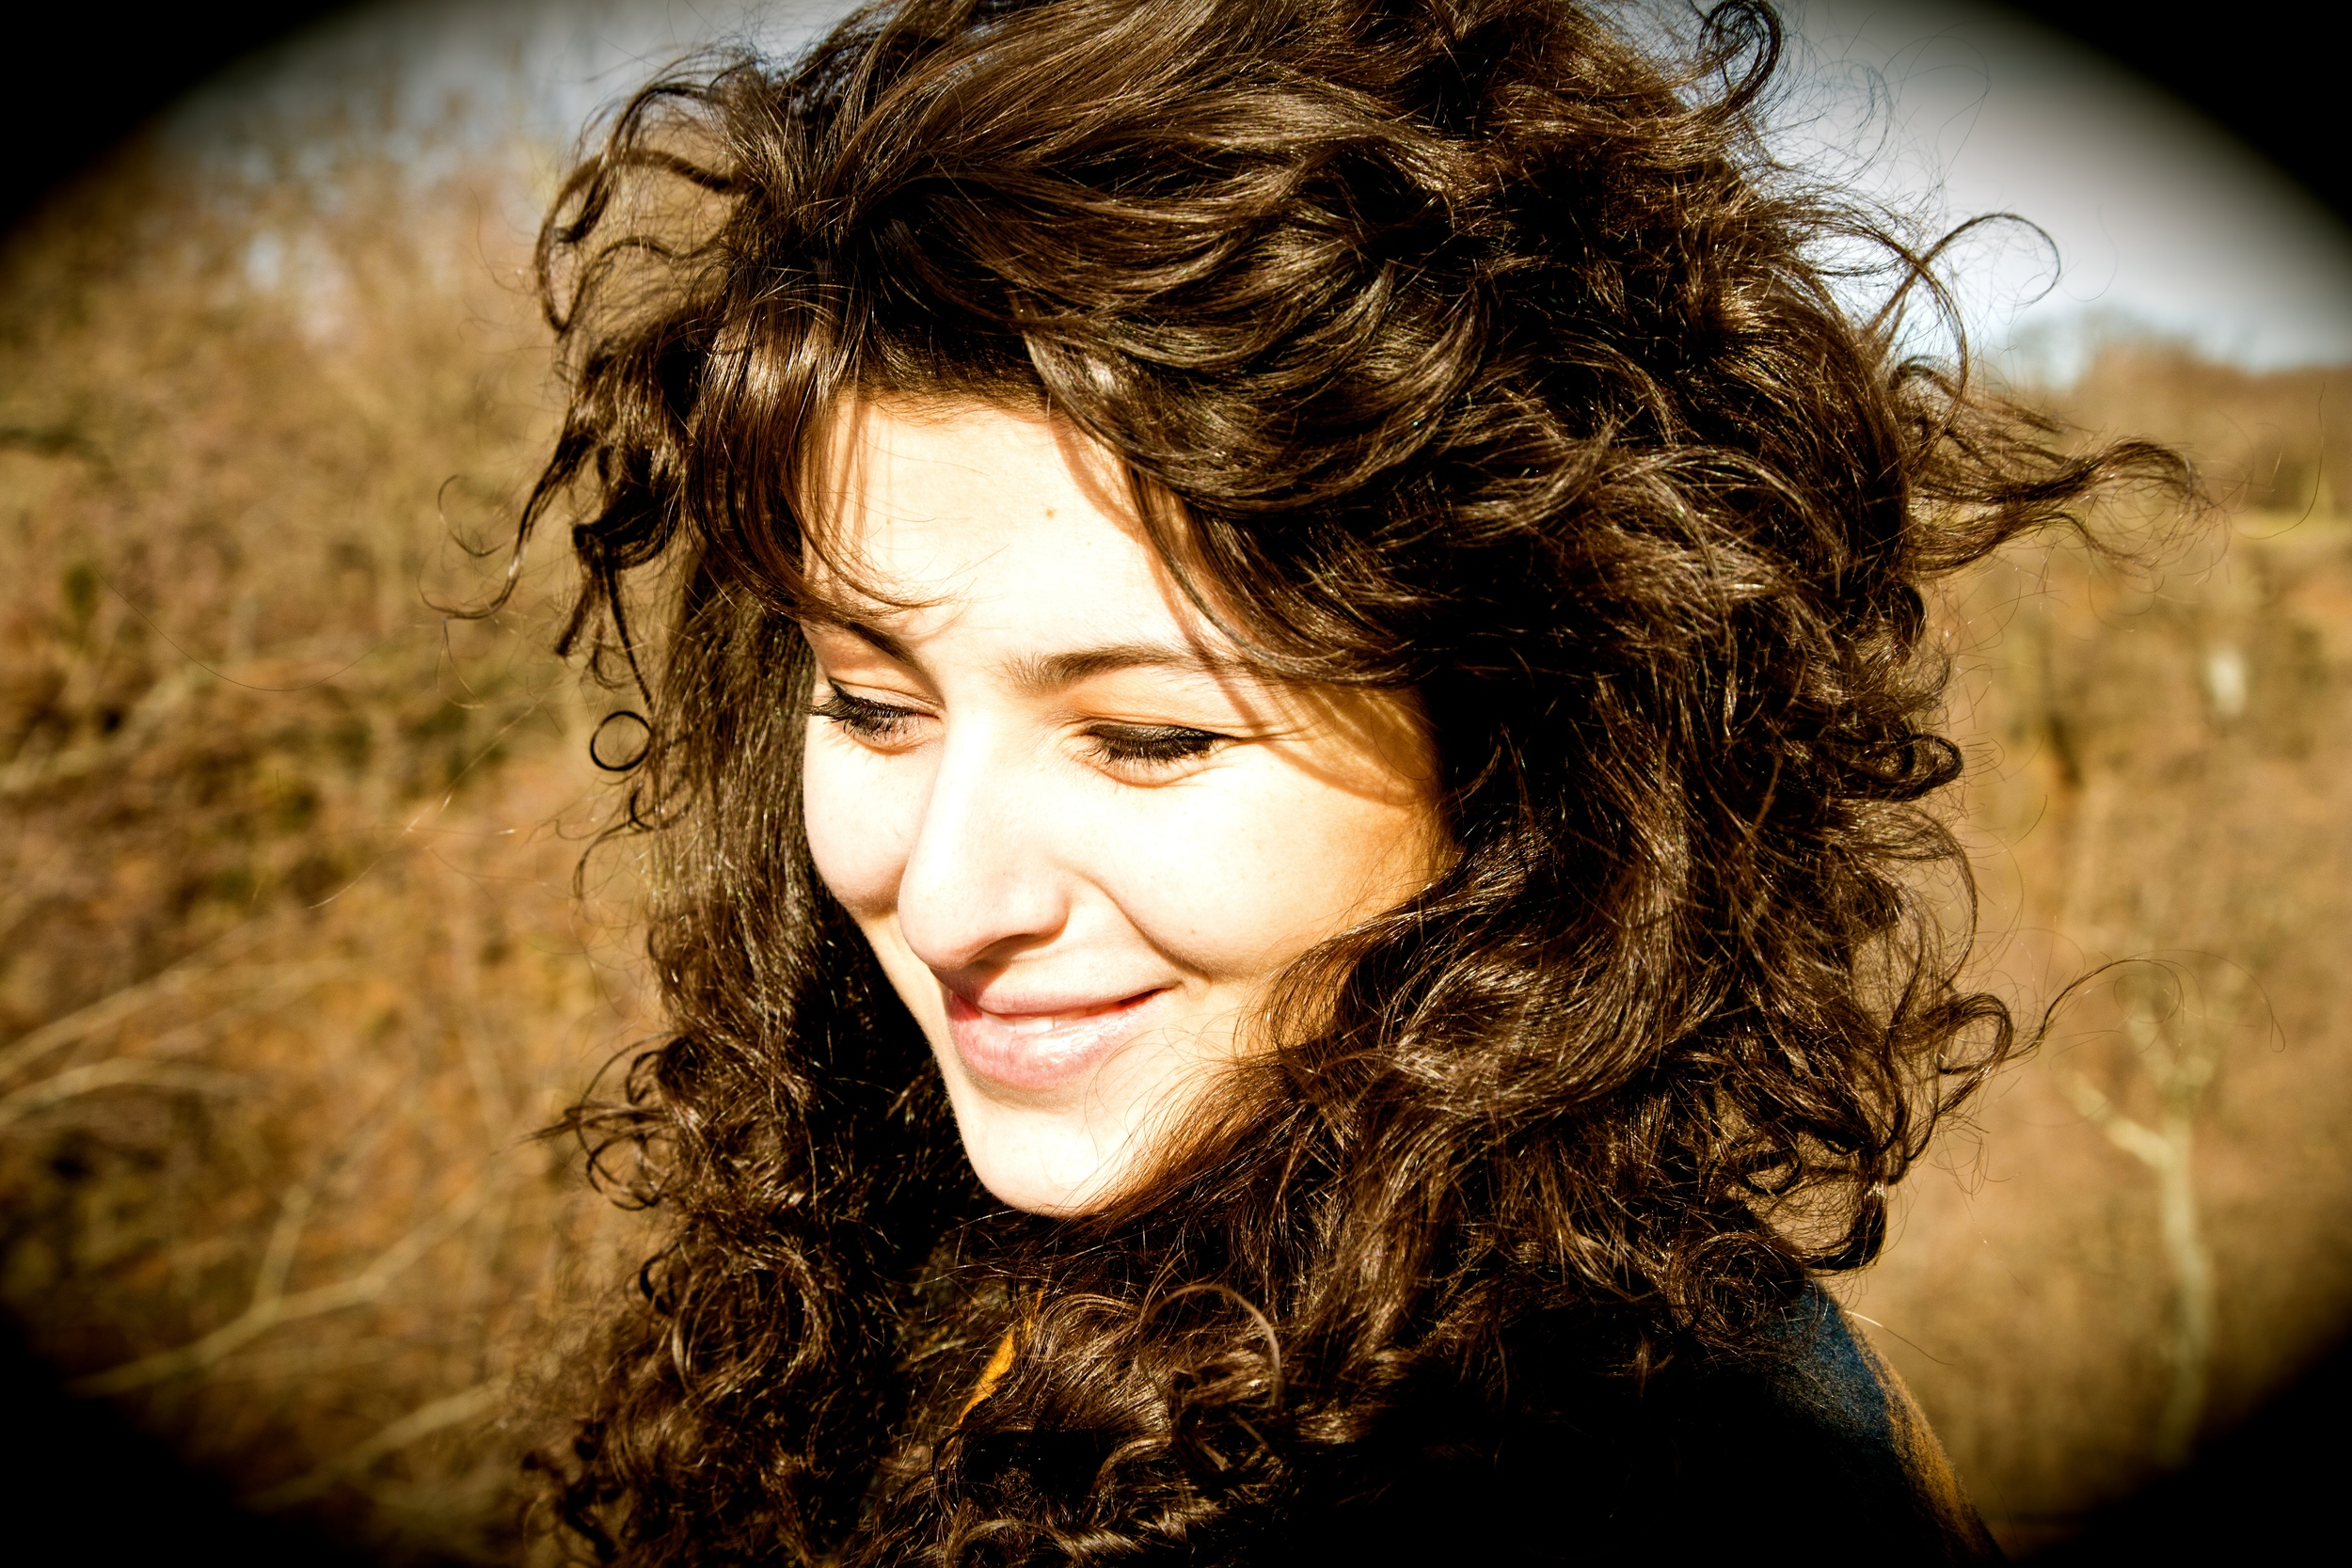 """MELIS AKER   (composer/lead singer/guitar/keys)  is a U.S. born Turkish/Greek/Azeri actor, musician and writer. As an actress, Melis is best known for originating the role of """"Roya"""" in Charles Randolph-Wright's world premiere play  Love in Afghanistan  at the Arena Stage. After receiving a certificate from the Royal Academy of Dramatic Art in London, and moving to the States for her undergraduate education at Tufts University (B.A. in Drama / Philosophy minor), she performed on various stages in New York, Washington D.C. and Boston. Her debut EP, """"Dirt,"""" produced by Ayhan Sahin from Young Pals Music N.Y. was released in the spring of 2015. Melis is currently based in New York, and will be receiving her MFA in Playwriting from Columbia University, under the guidance of Lynn Nottage, Anne Bogart, Chuck Mee, and David Henry Hwang.    www.melisaker.com    Actors' Equity Association   Meg Pantera The Agency"""